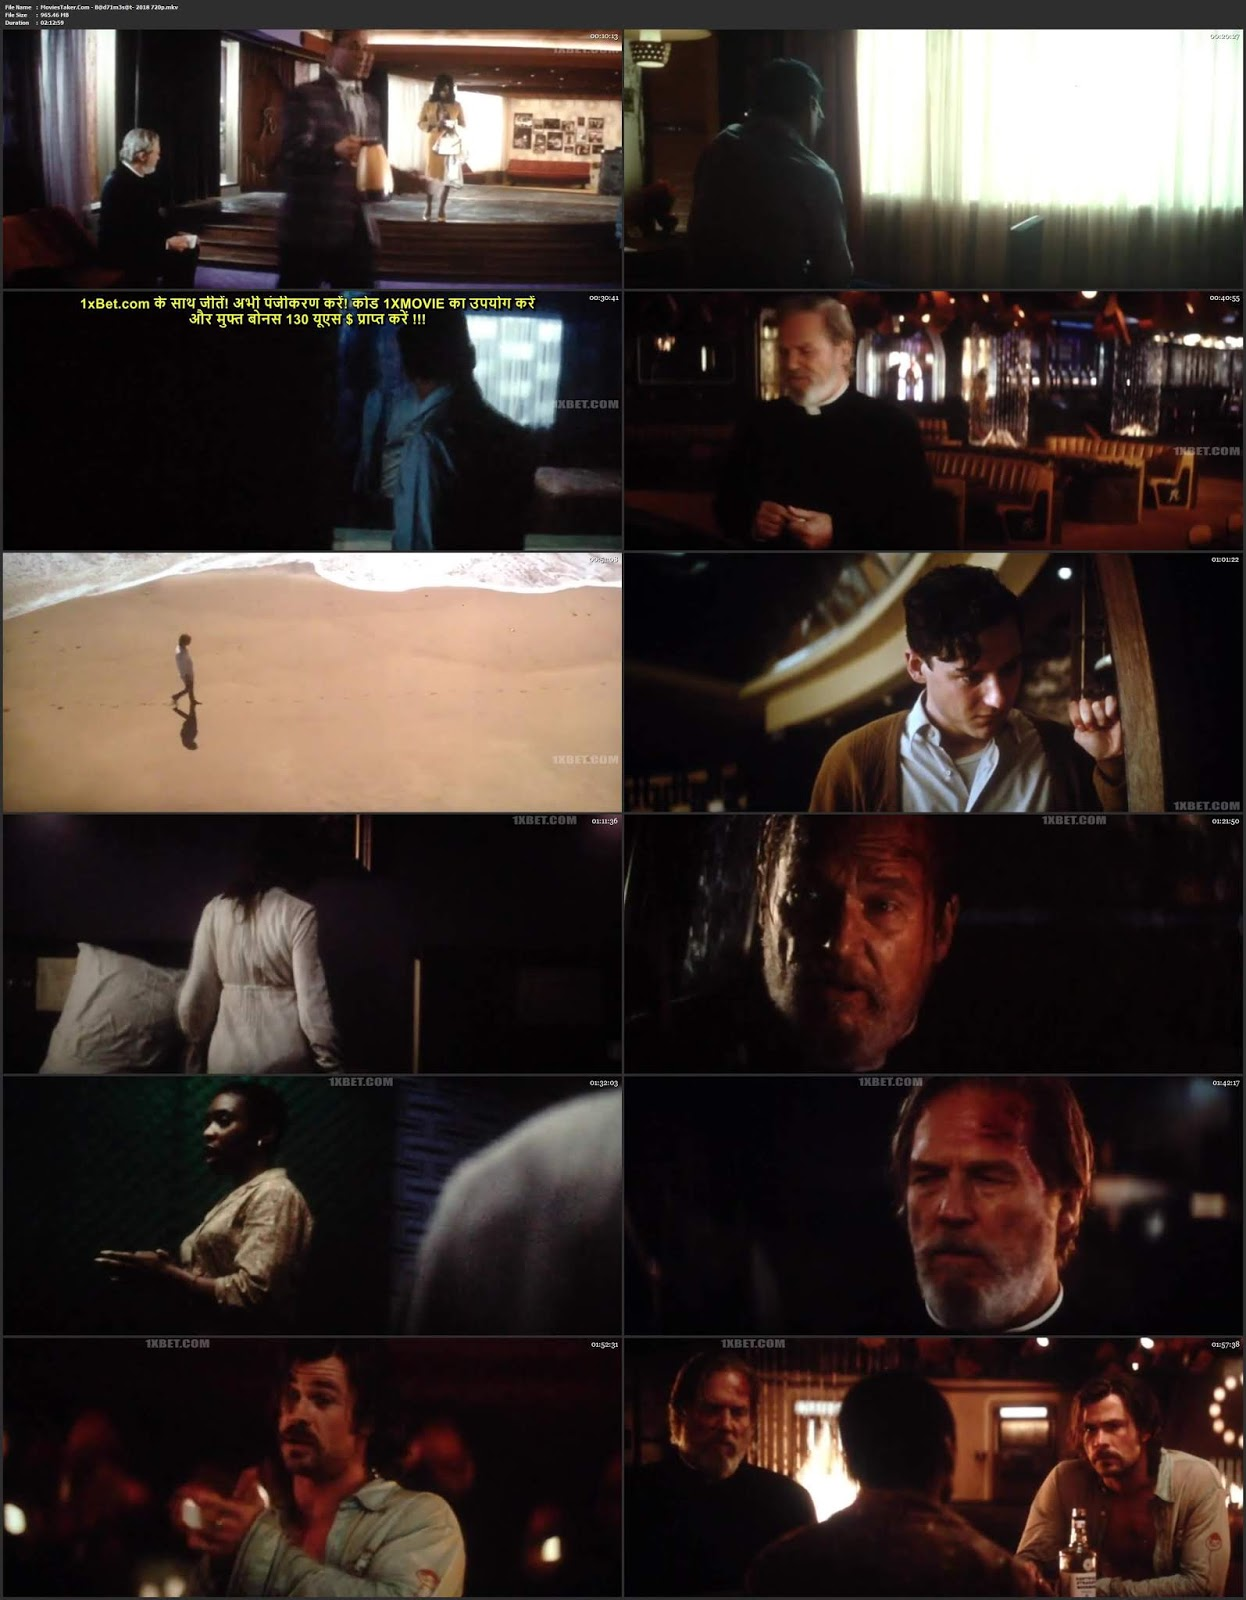 Bad Times at the El Royale 2018 English HDCAM x264 720p